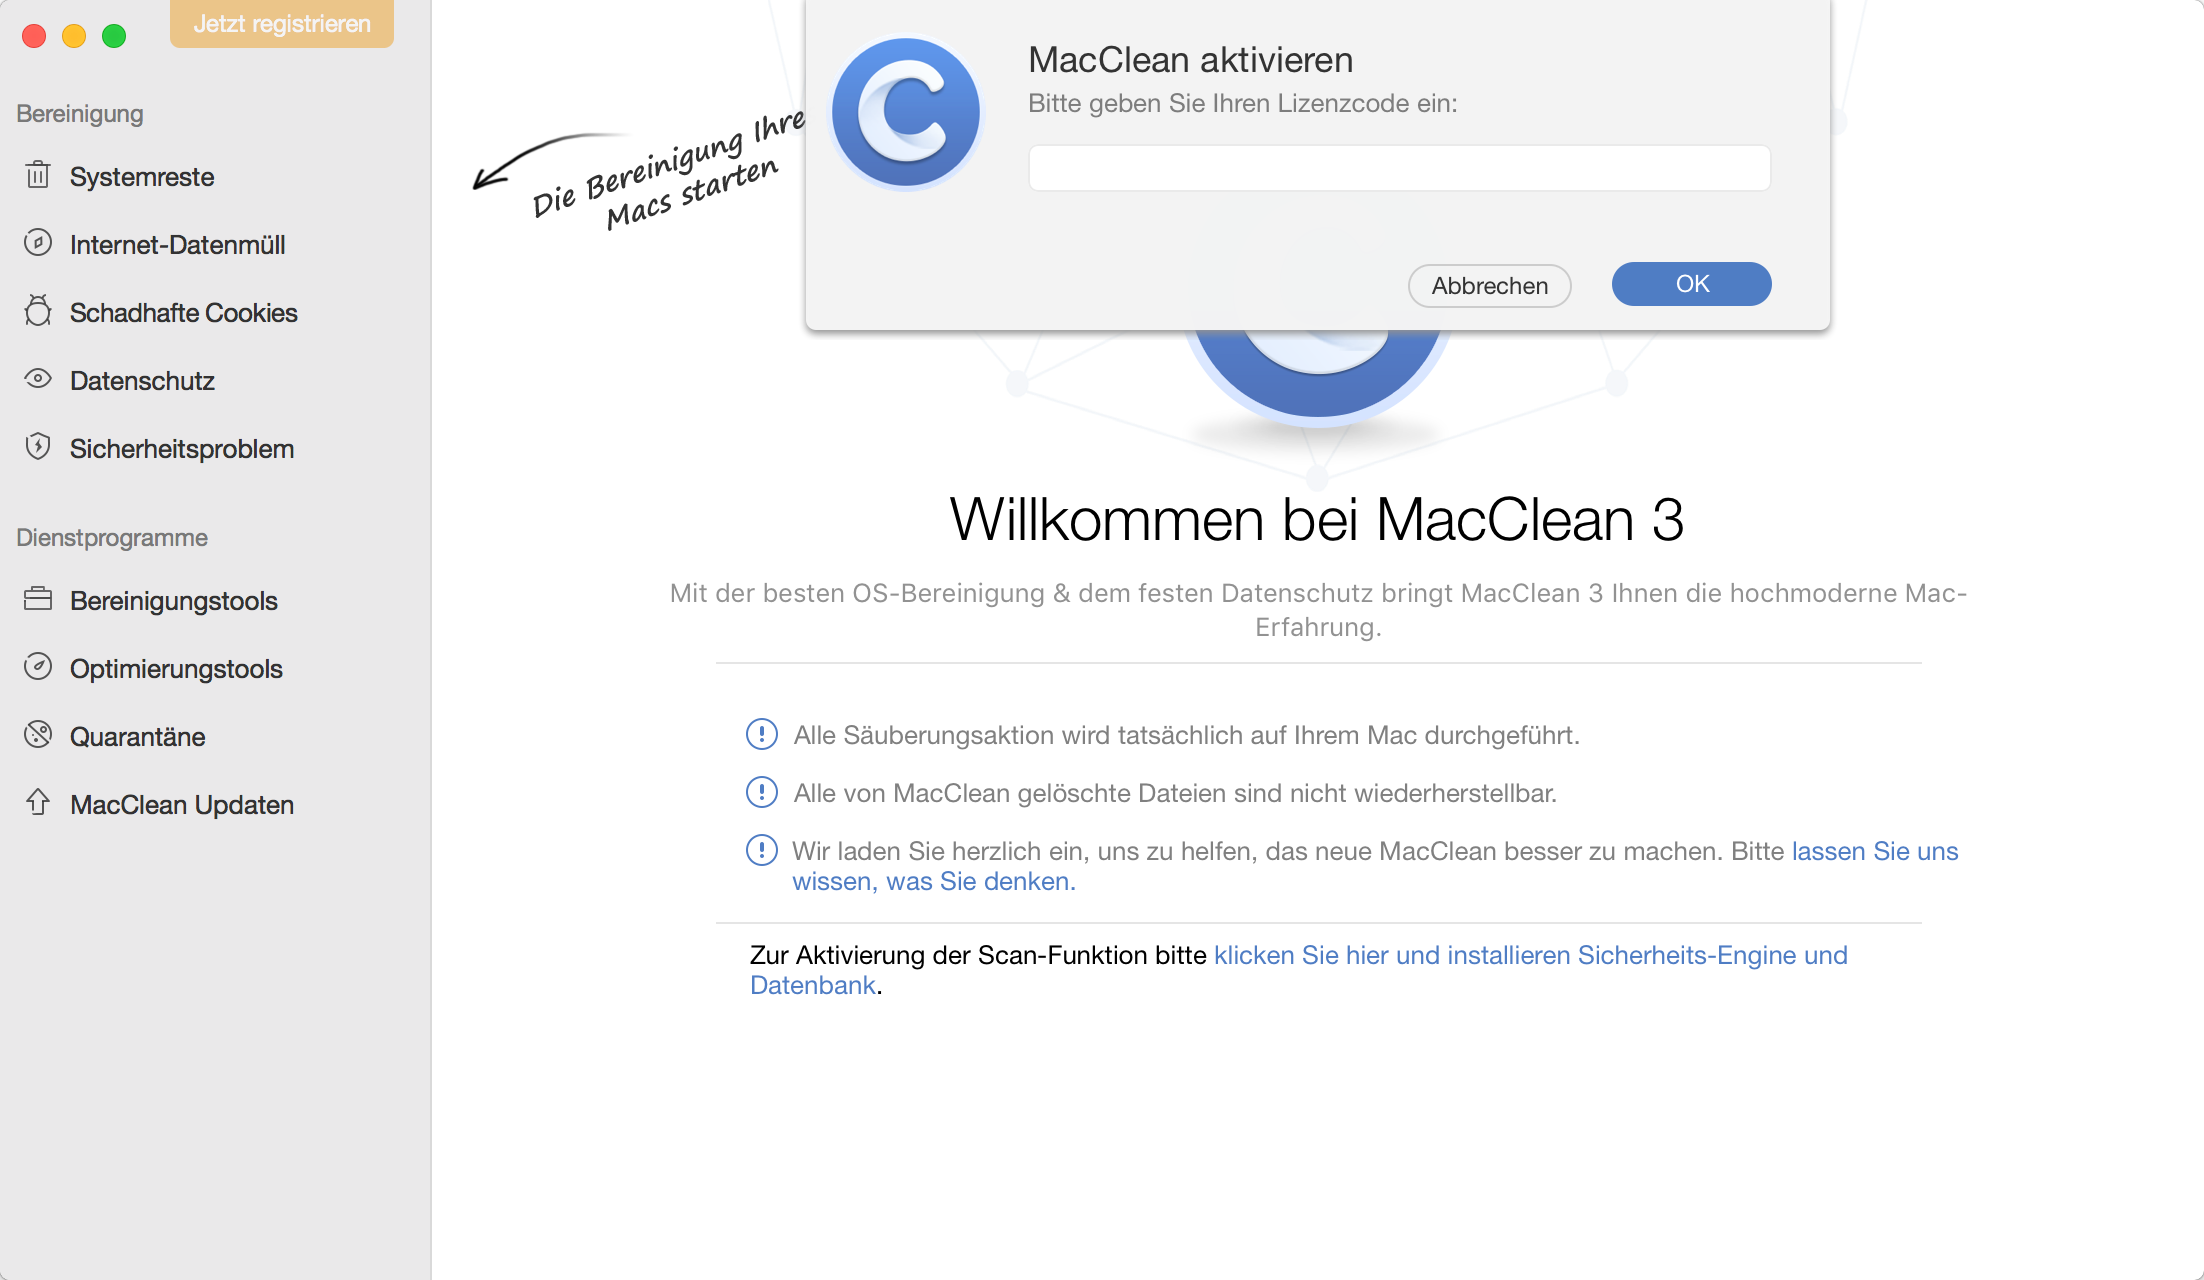 MacClean register successfully